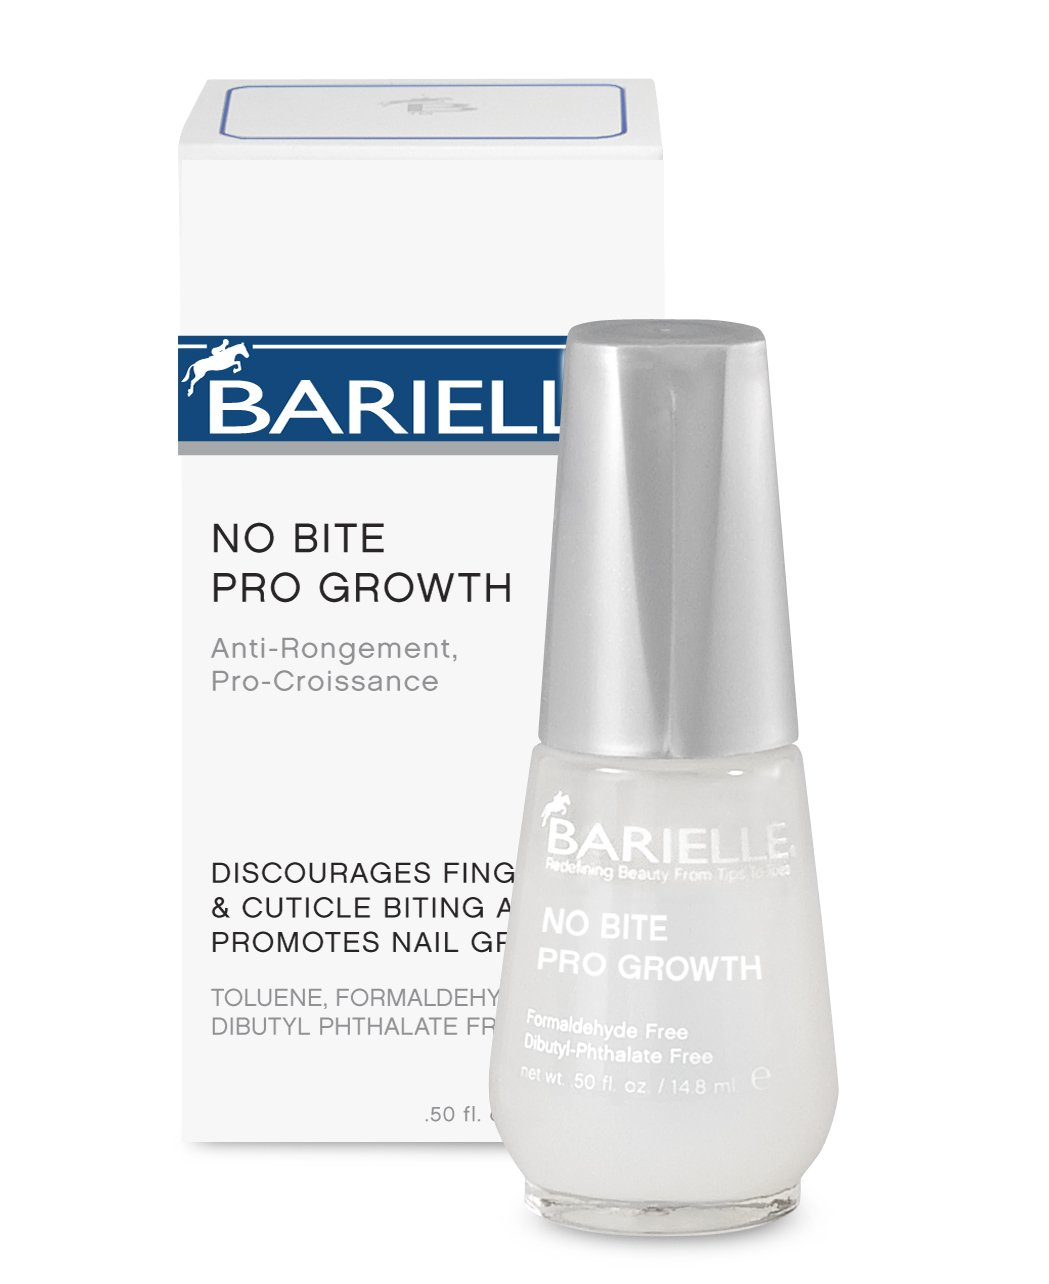 Barielle No Bite Pro Growth 14.8 ml Fisk Industries Inc. 1093